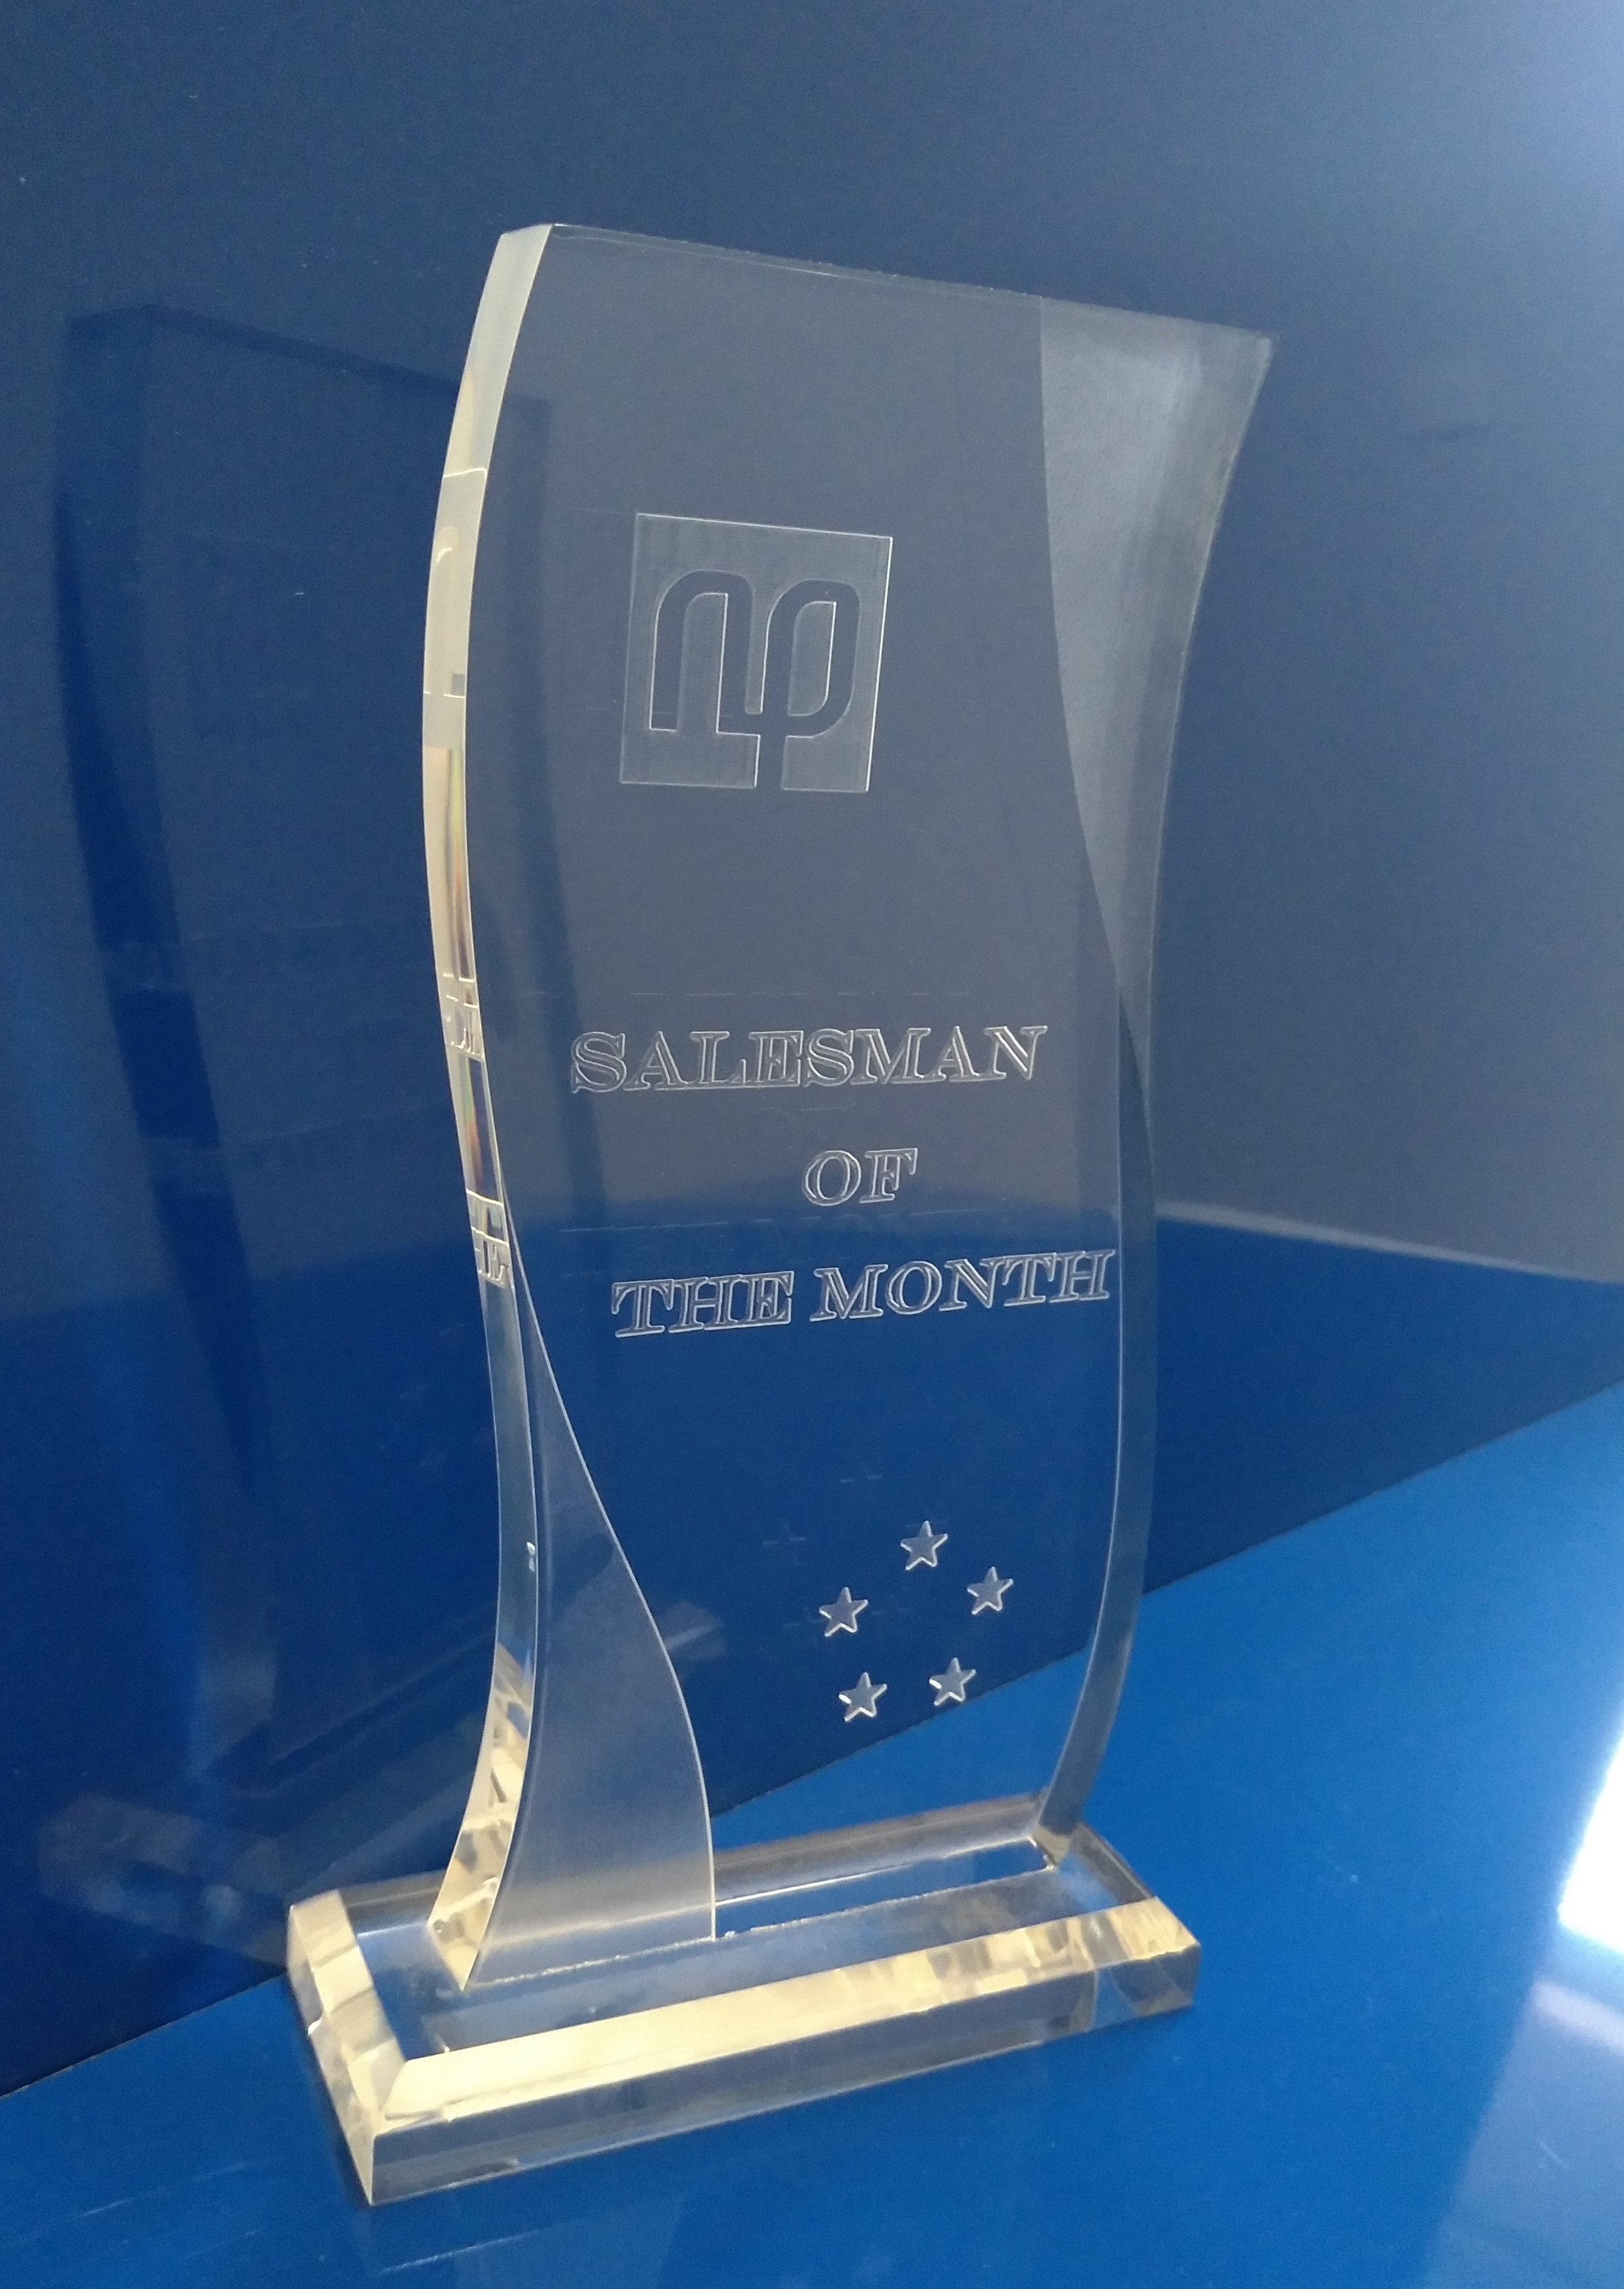 Acrylic Trophies & Plaques - Northern Plastic Supplies and